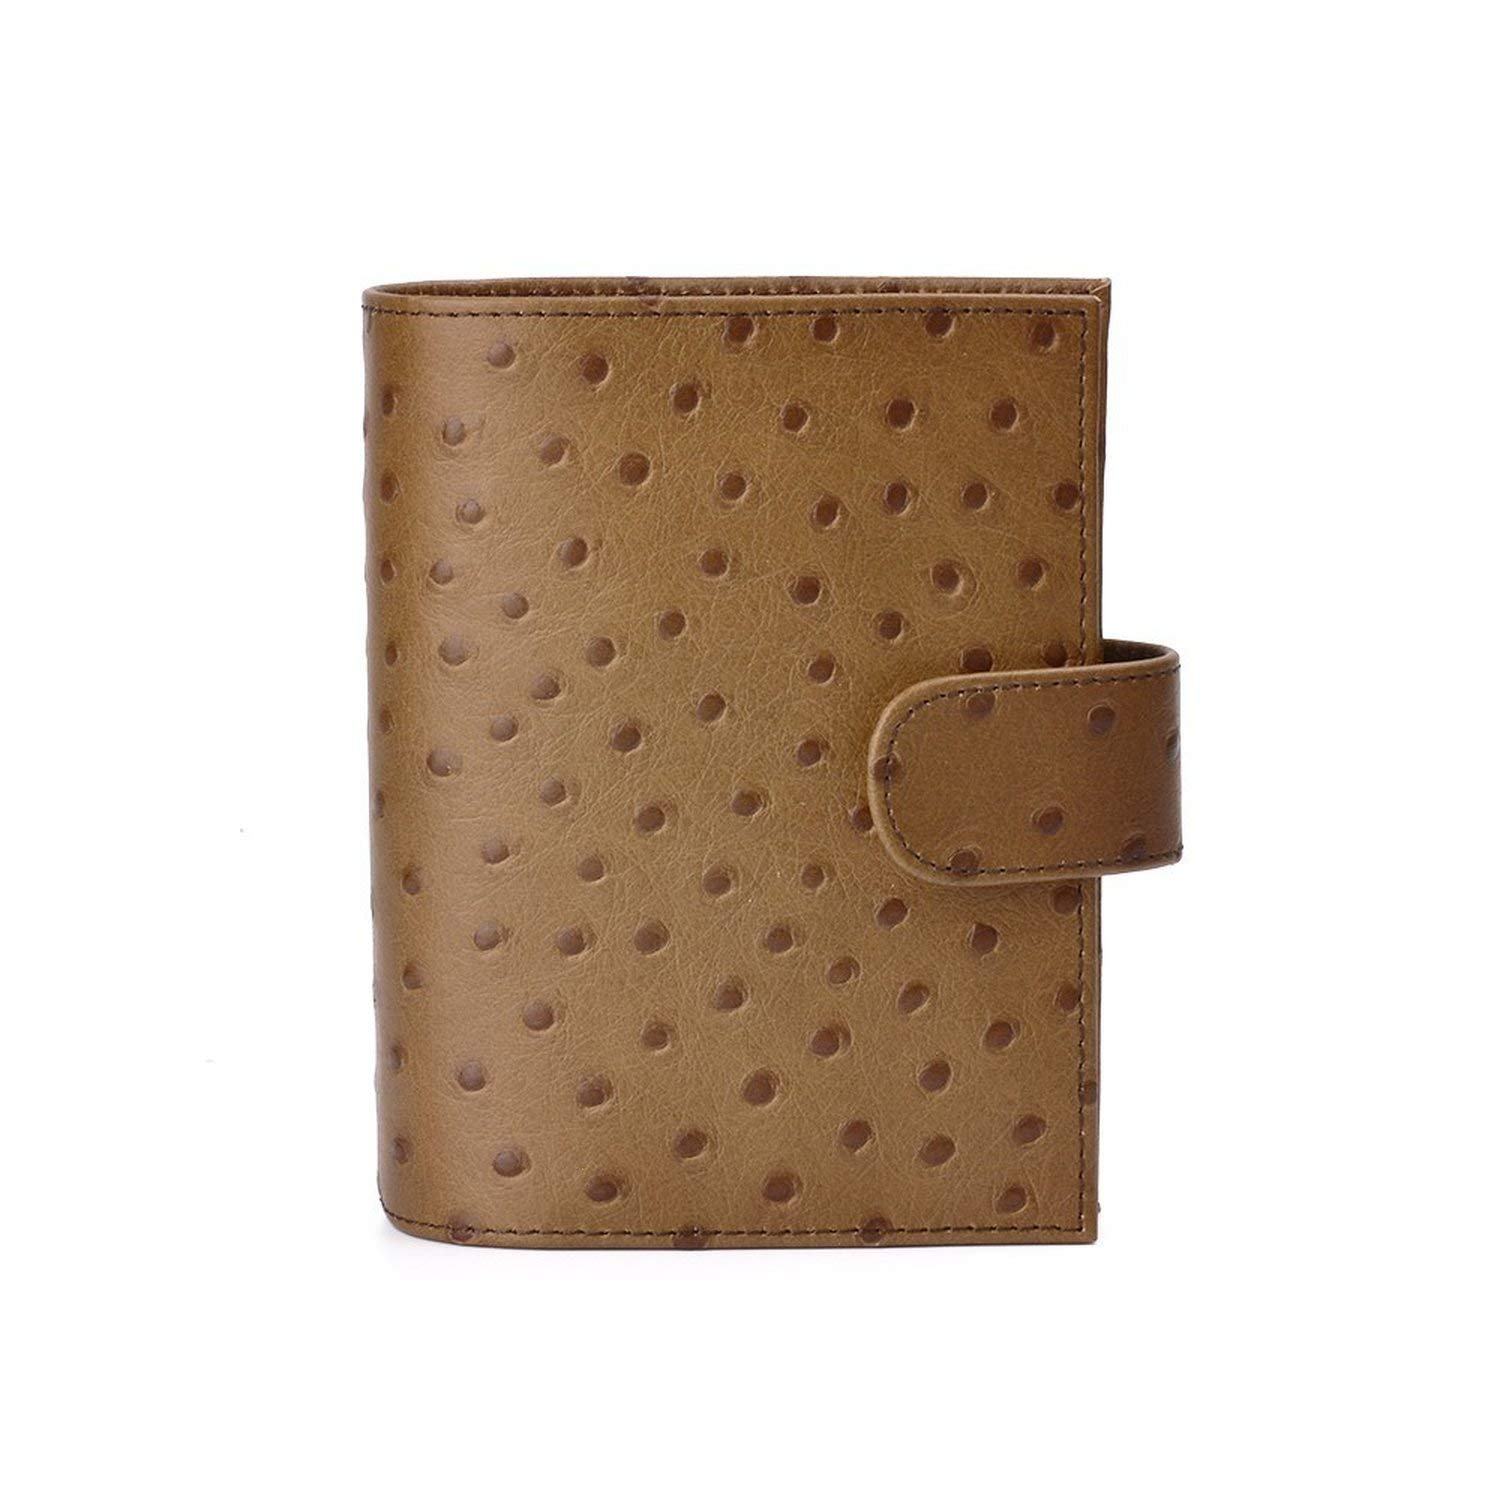 Amazon.com : Genuine Leather Rings Notebook A7 Size Brass ...